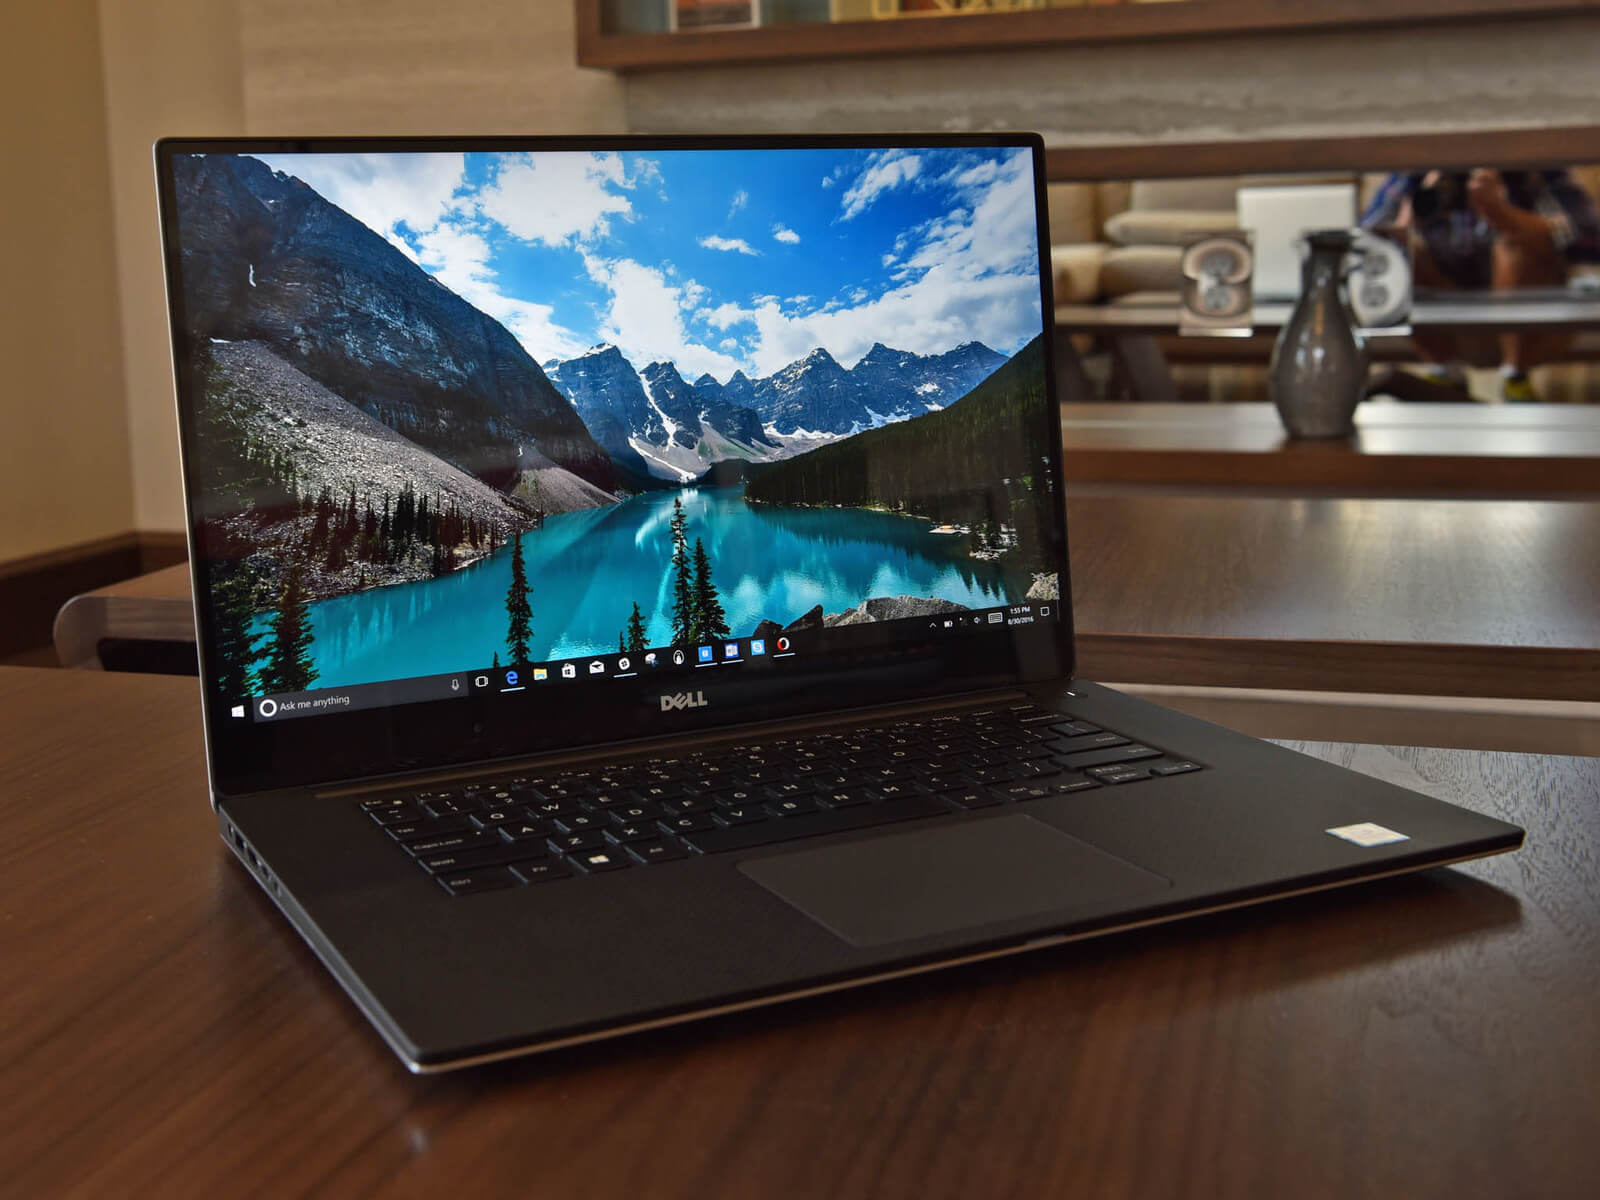 10 Best Chosen Laptops In 2018: Dell XPS 15 9560 Laptop